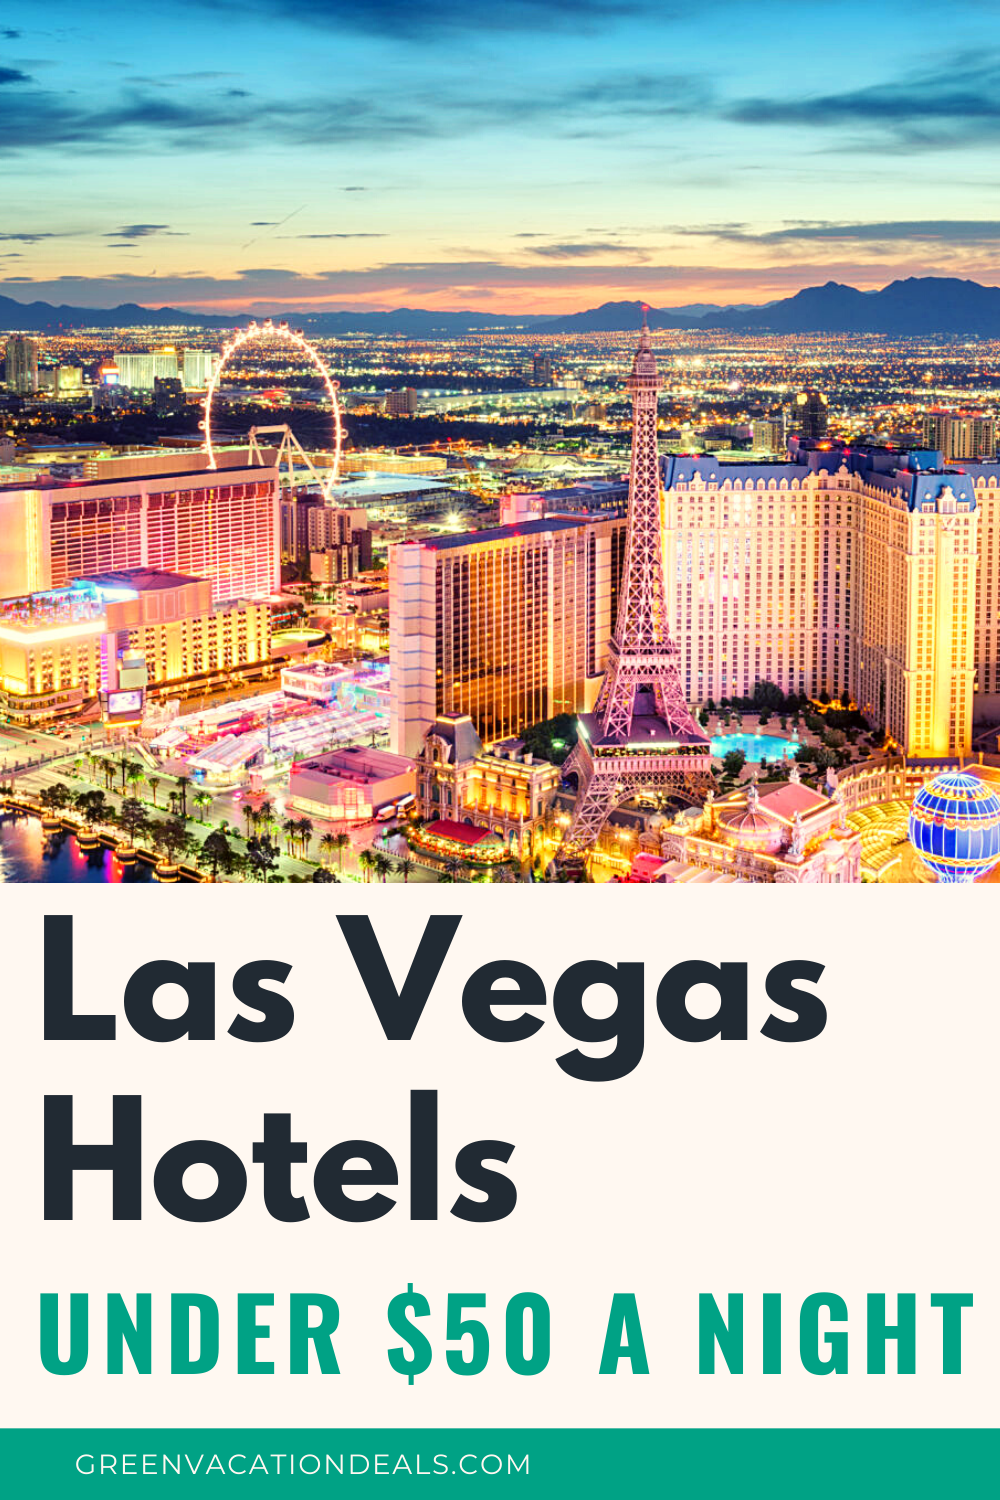 Top Las Vegas hotels under $50/night: Paris, Flamingo, Bally's, Rio, Excalibur, Luxor, MGM, Mirage, Planet Hollywood, Westgate, Strat, Orleans, New York... Must see travel deals for Las Vegas Nevada trips. #LasVegas #Vegas #VIvaLasVegas #Vegasbaby #hoteldeals #BudgetTravel #budgettraveler #budgettrip #cheaptravel #cheapvacation #budgetvacation #travelhacks #travelsale #hotelsale #travel